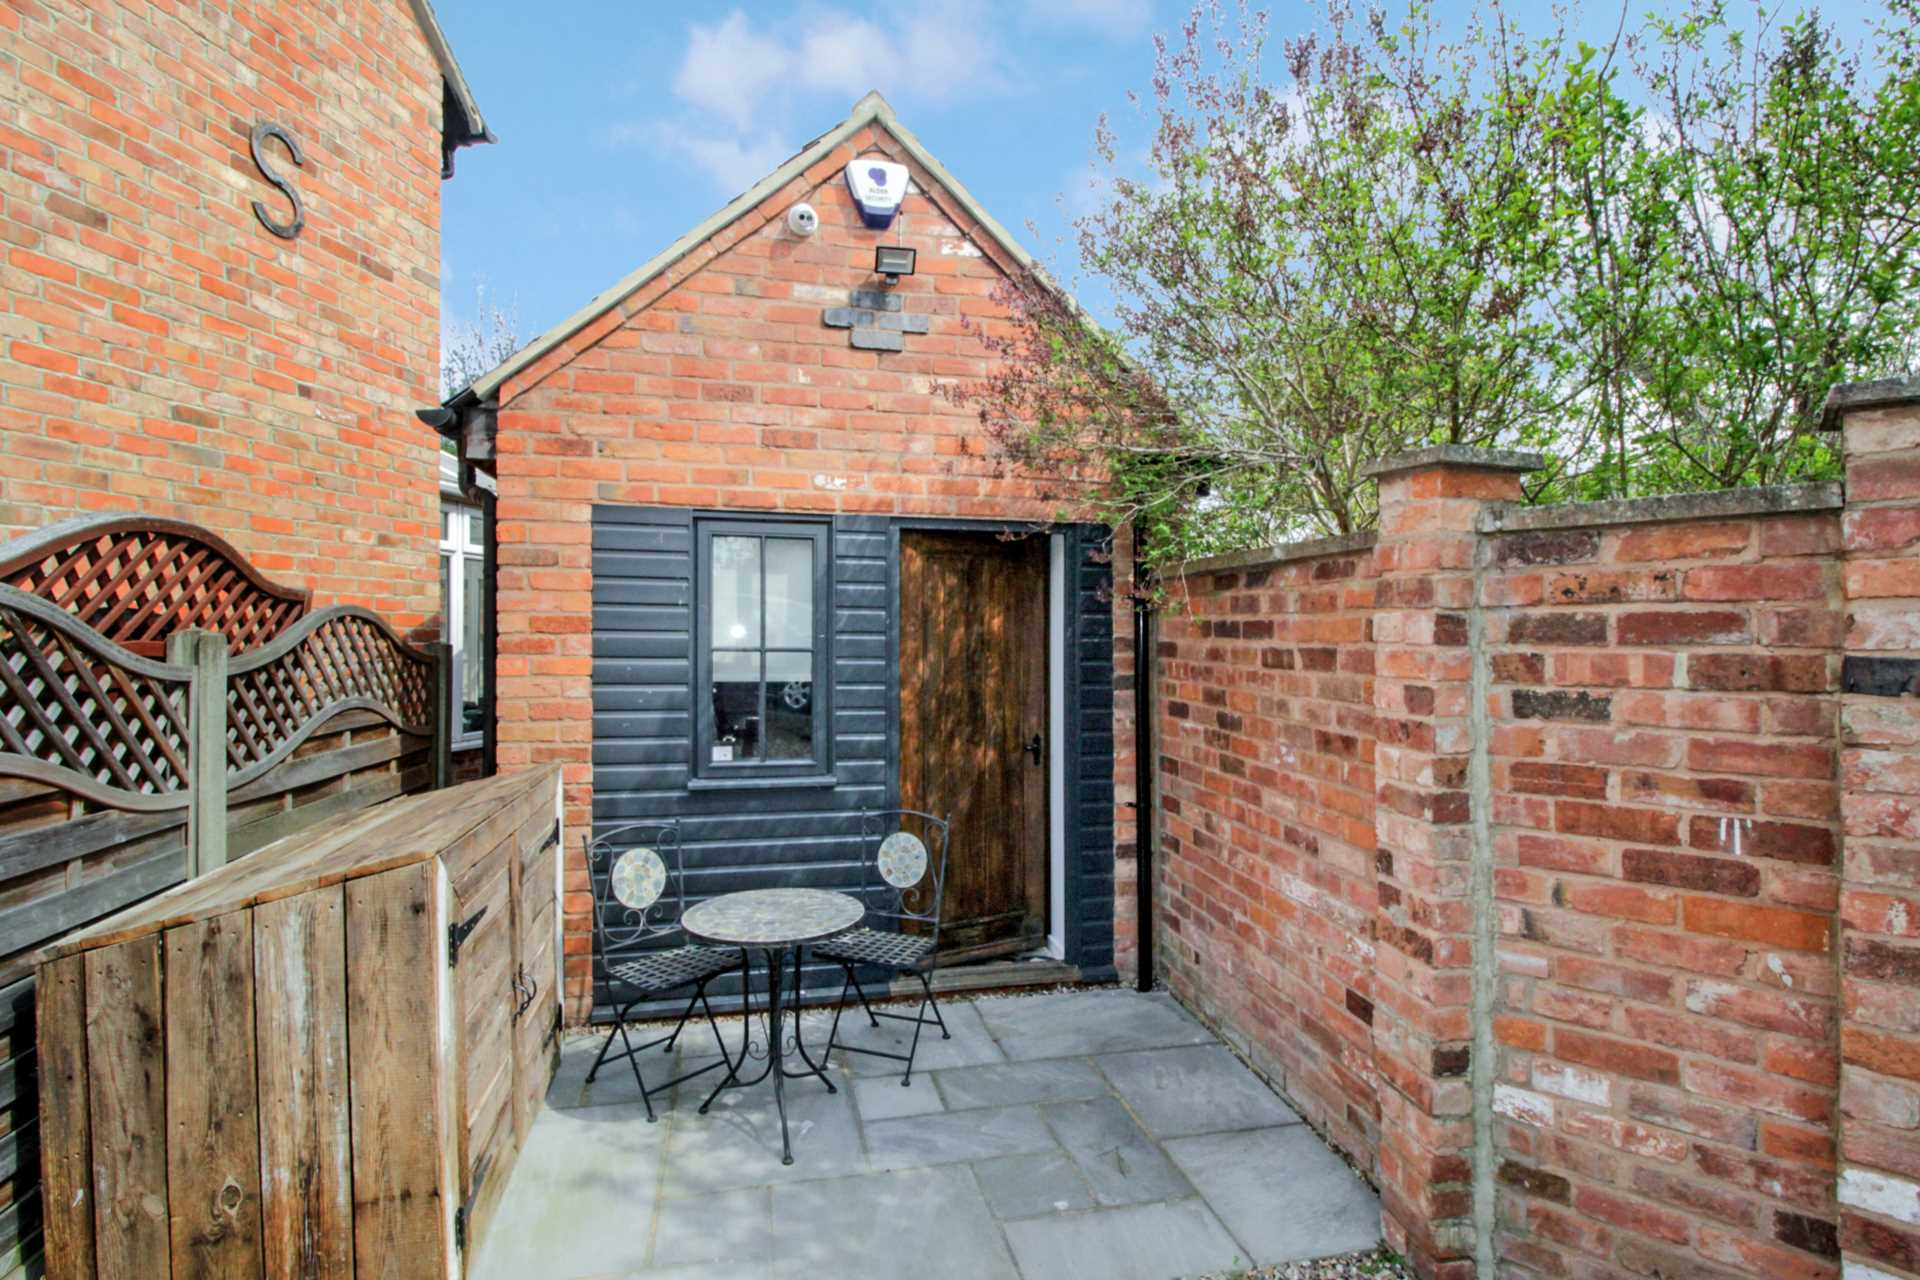 Iris Cottage, Telegraph Street, Shipston on Stour, CV36 4DA, Image 23